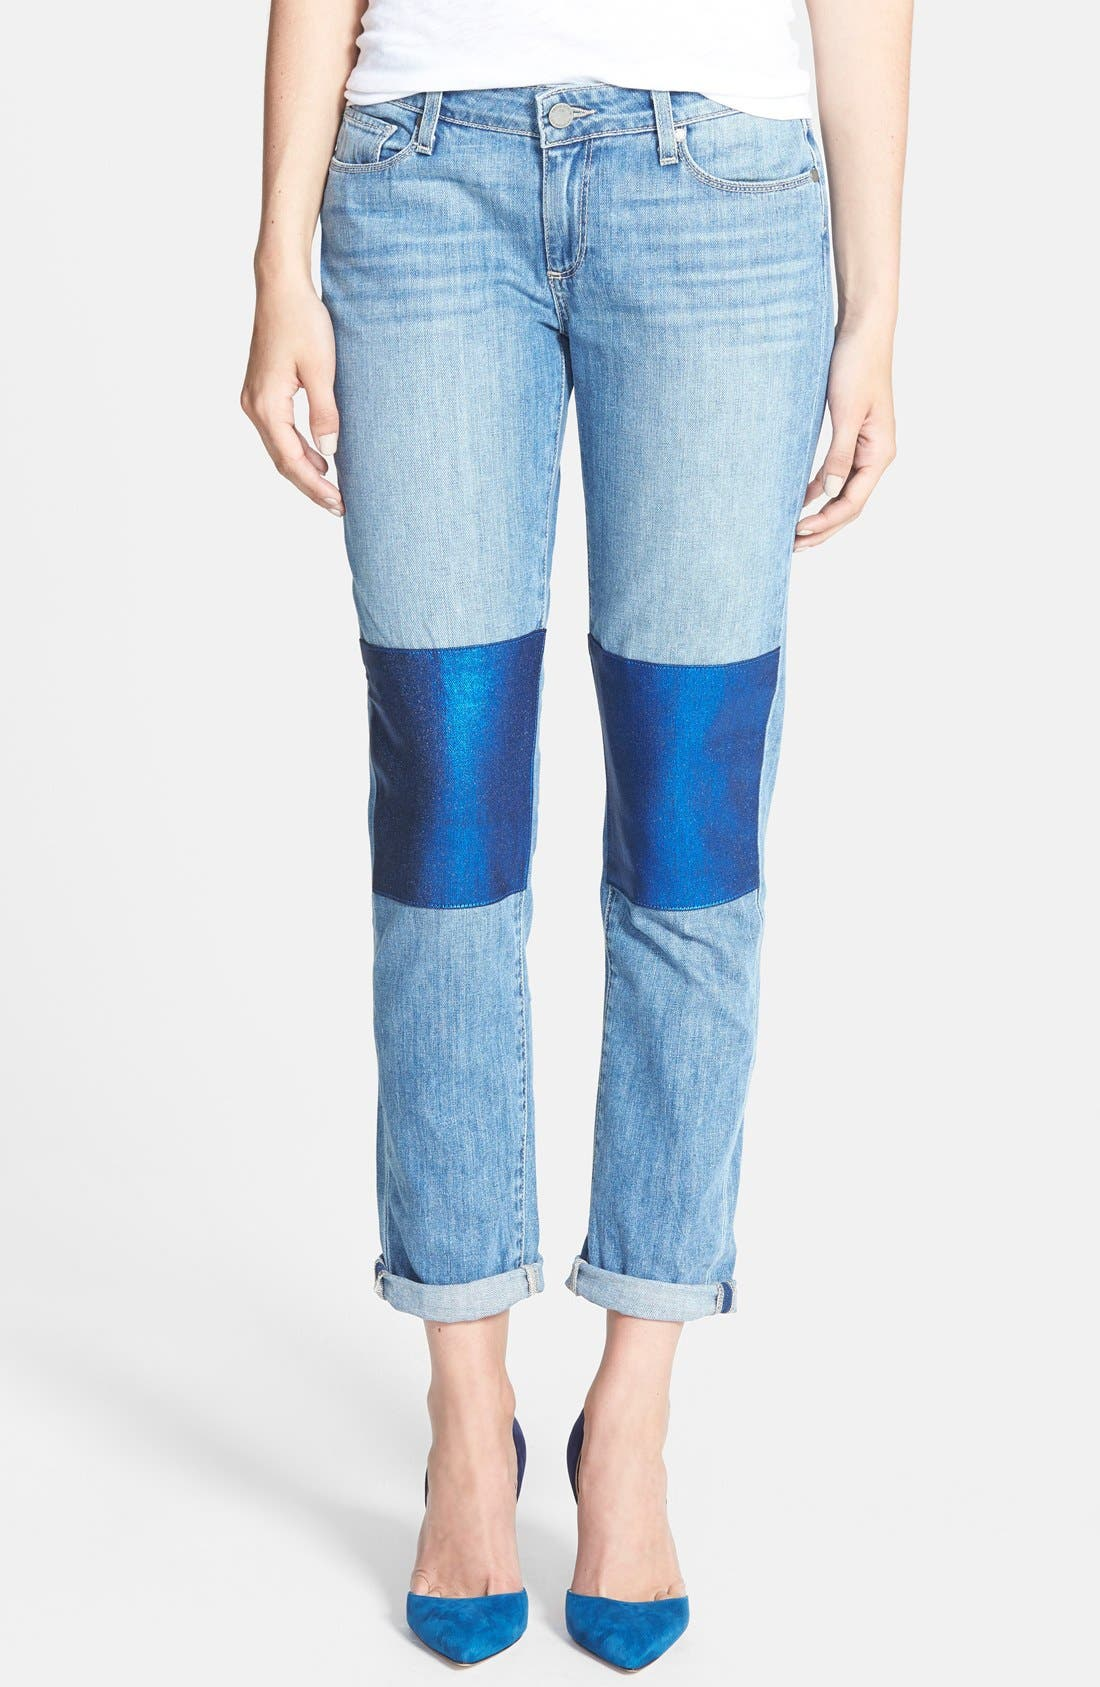 Main Image - Paige Denim 'Jimmy Jimmy' Knee Patch Skinny Boyfriend Jeans (Nico Blue)